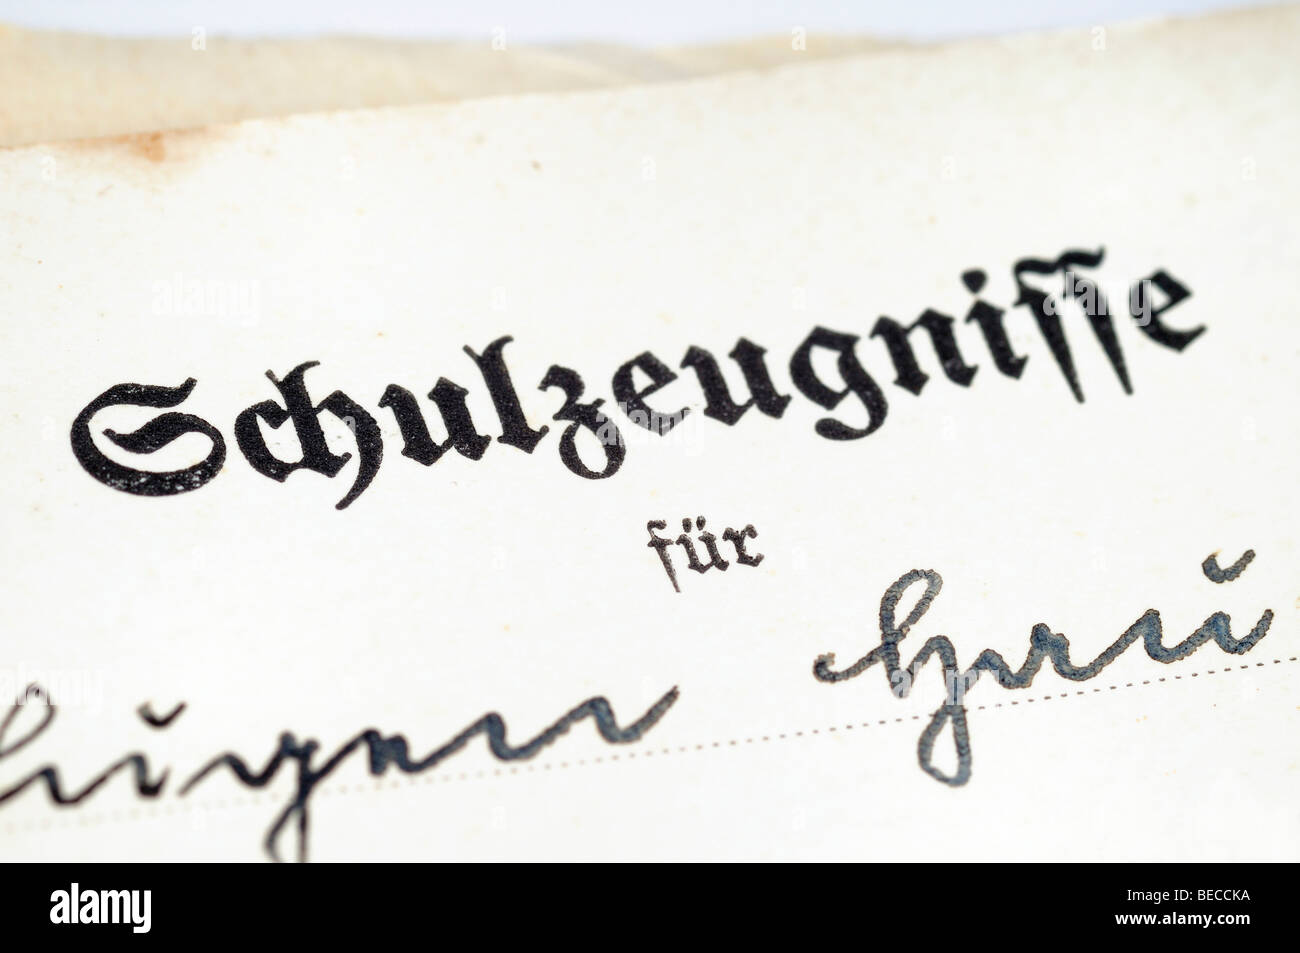 Old Schulzeugnis, German for school report card, detail - Stock Image